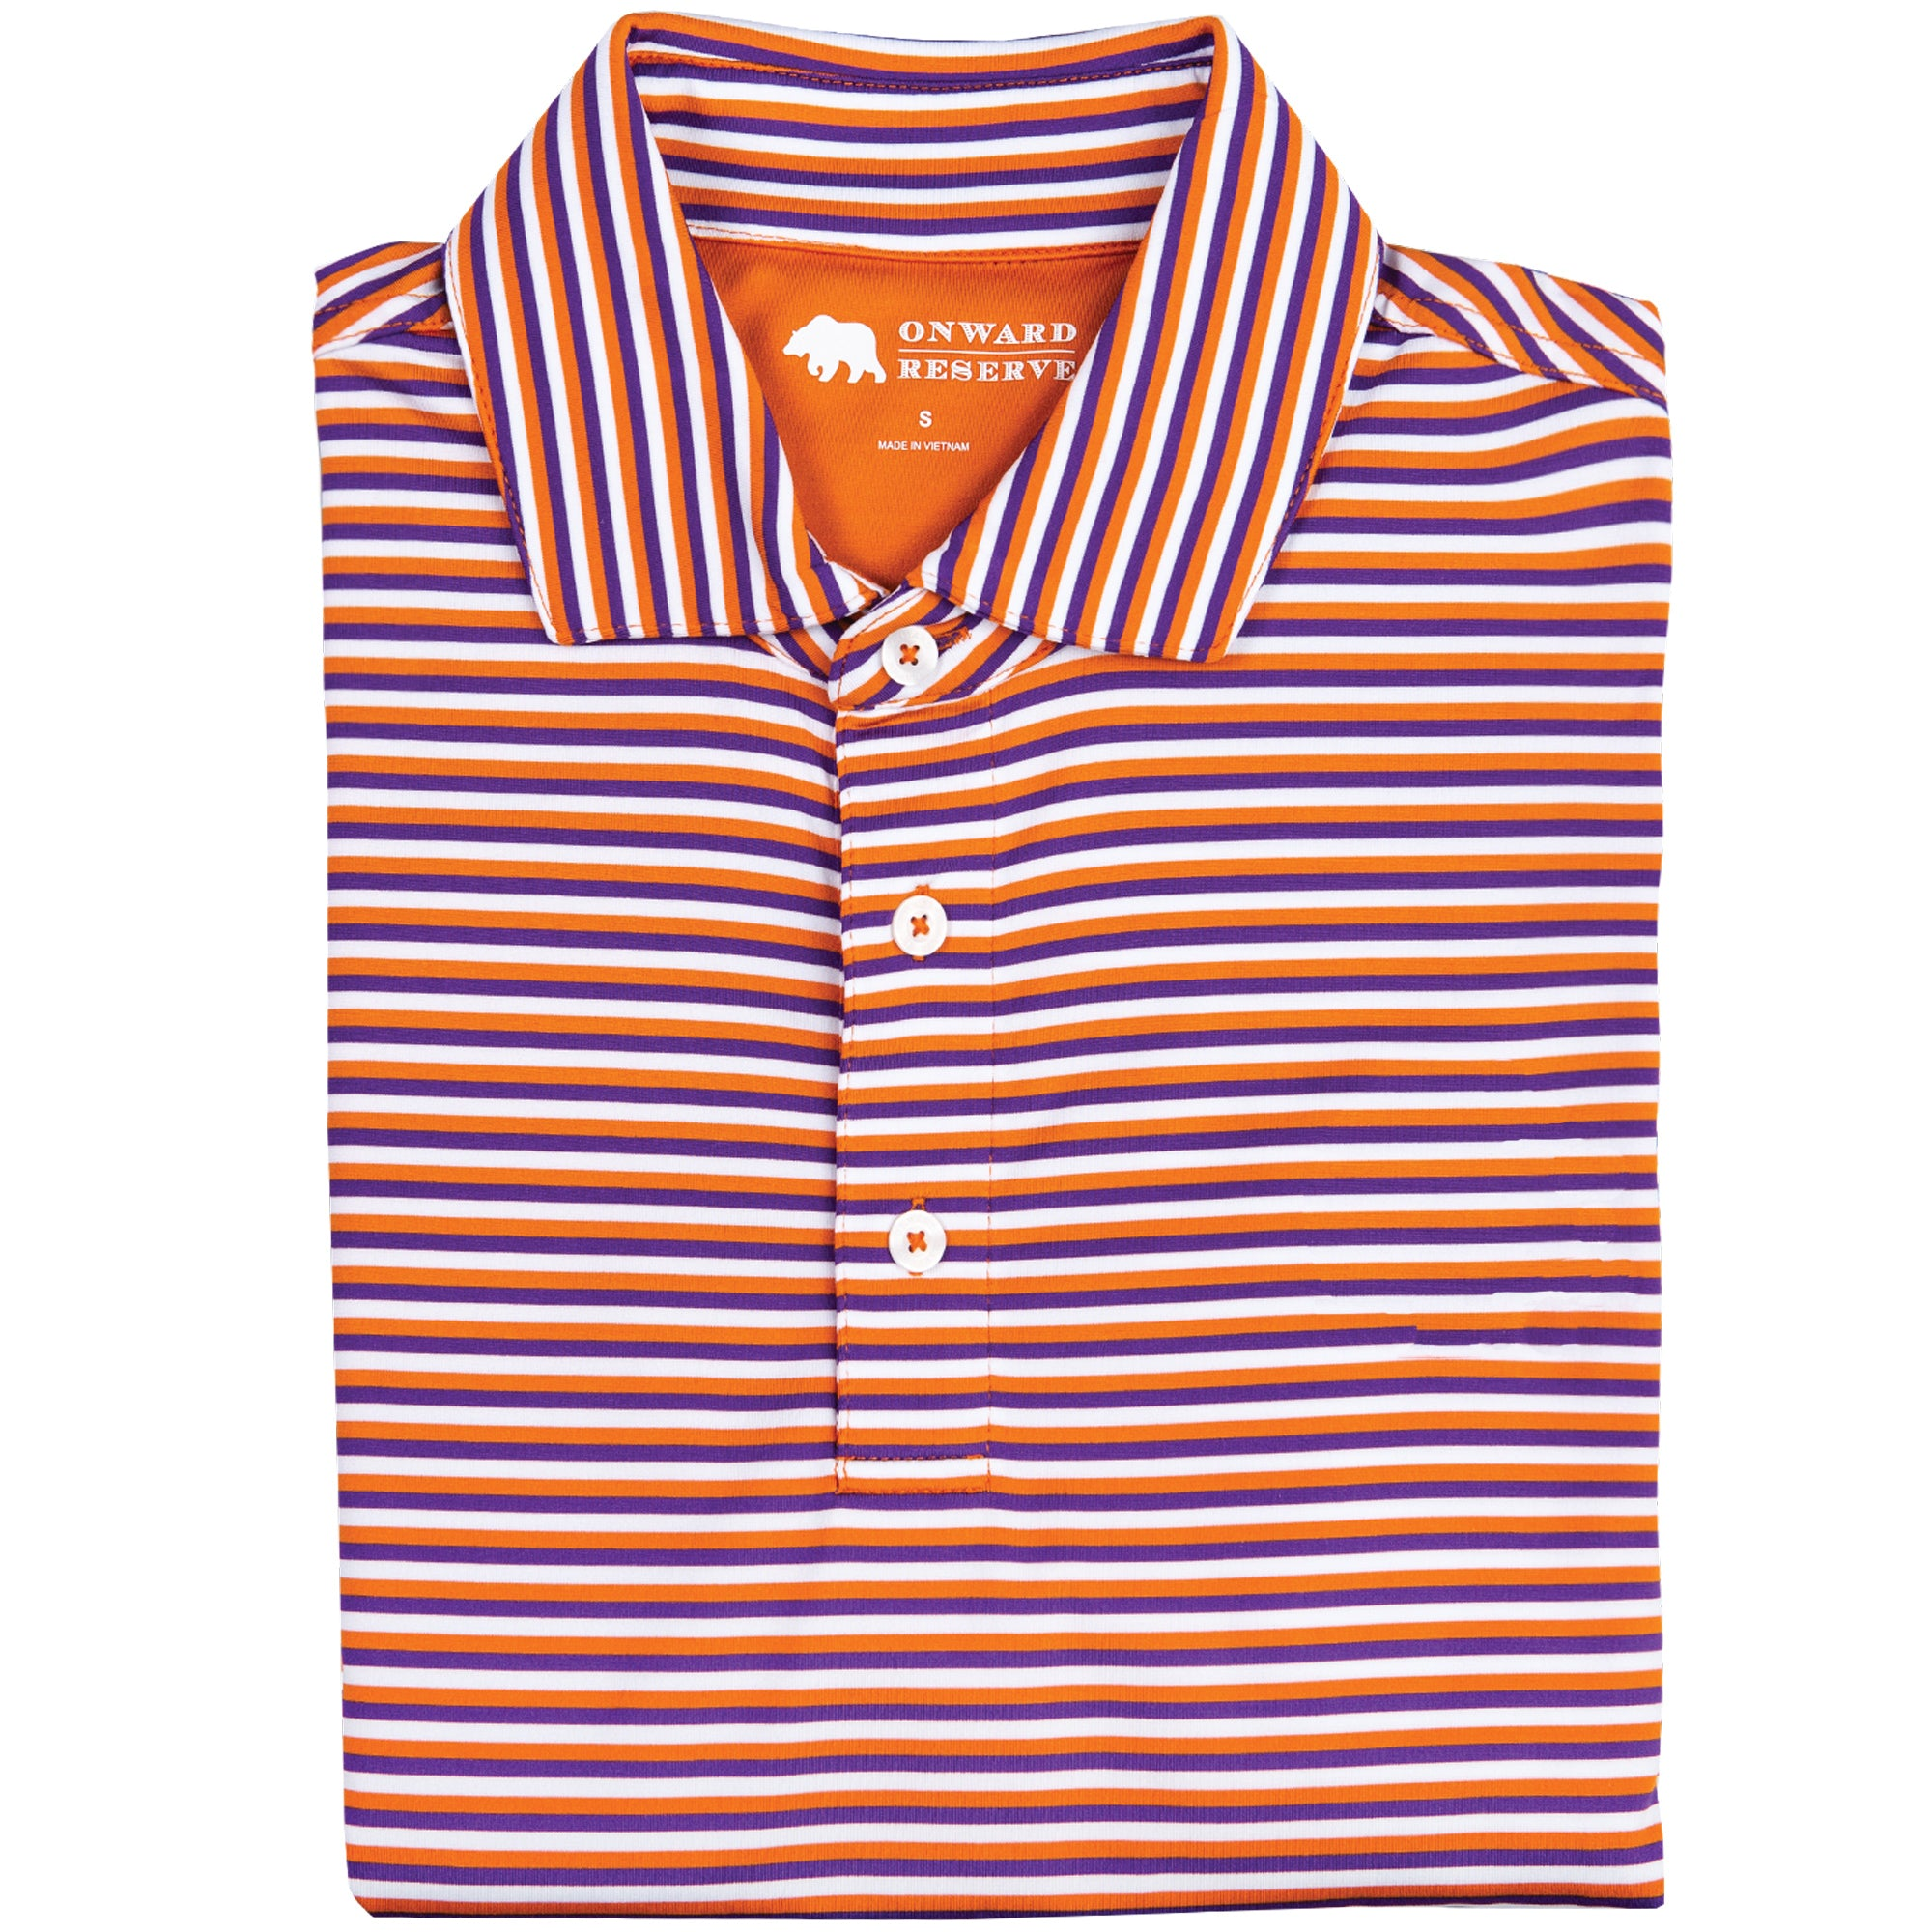 Triple Stripe Performance Polo - Orange/Purple - OnwardReserve